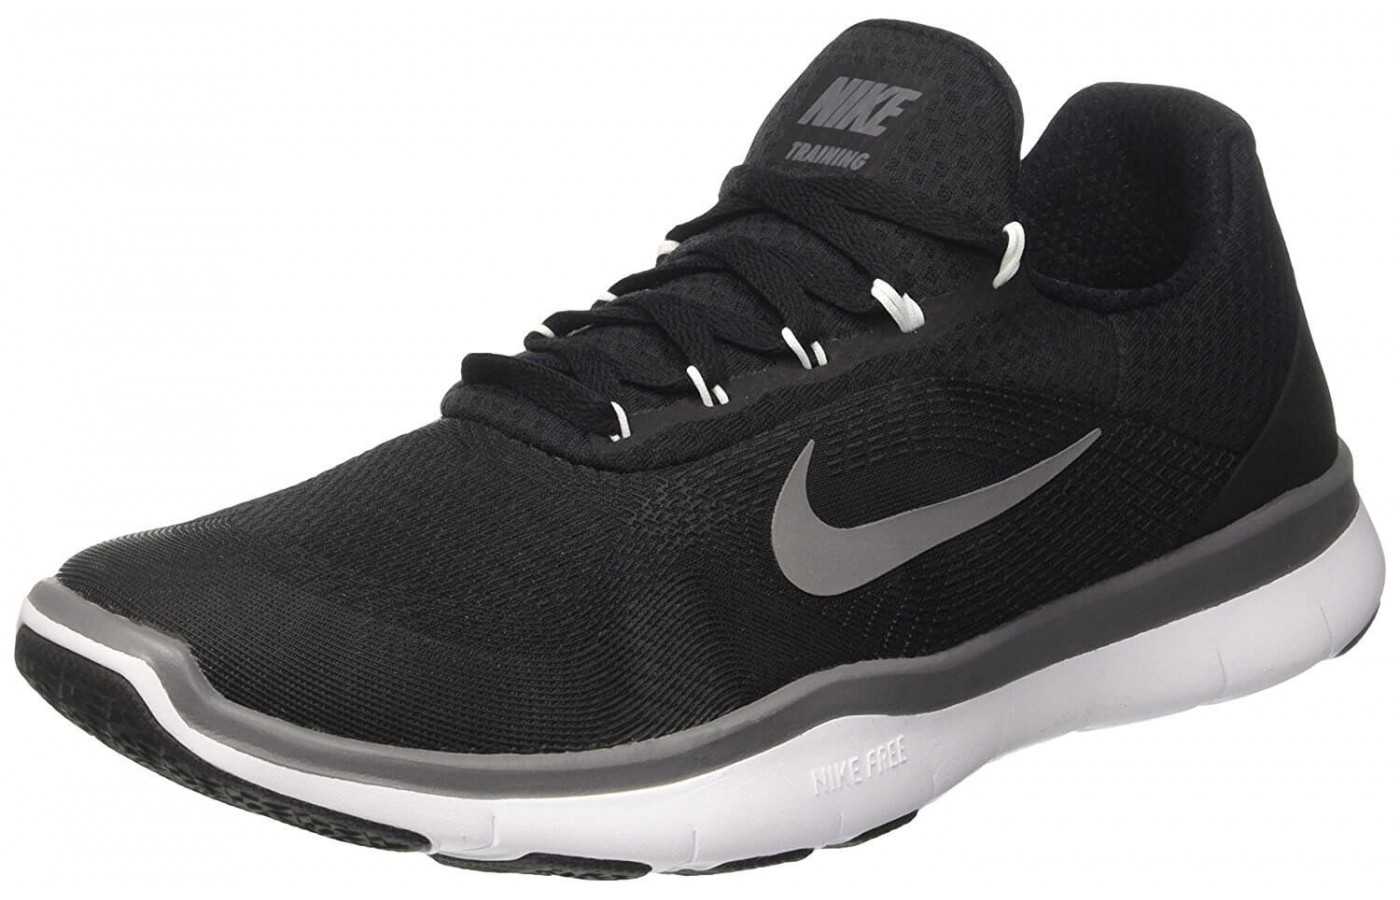 10c415692dc0 The Nike Free Trainer V7 has a lightweight mesh upper ...